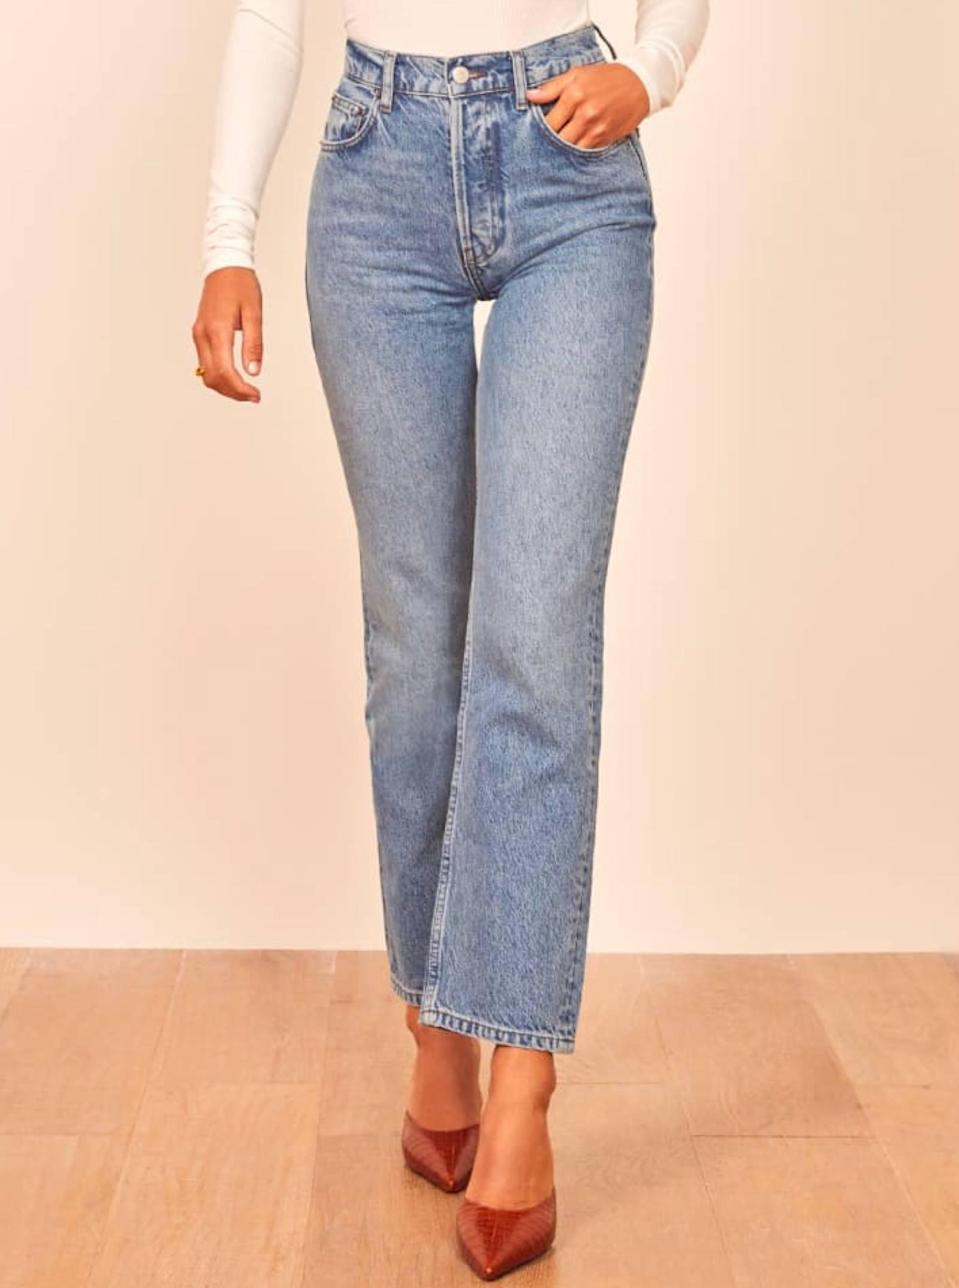 """$128, Reformation. <a href=""""https://www.thereformation.com/products/cynthia-high-relaxed-jean?"""" rel=""""nofollow noopener"""" target=""""_blank"""" data-ylk=""""slk:Get it now!"""" class=""""link rapid-noclick-resp"""">Get it now!</a>"""